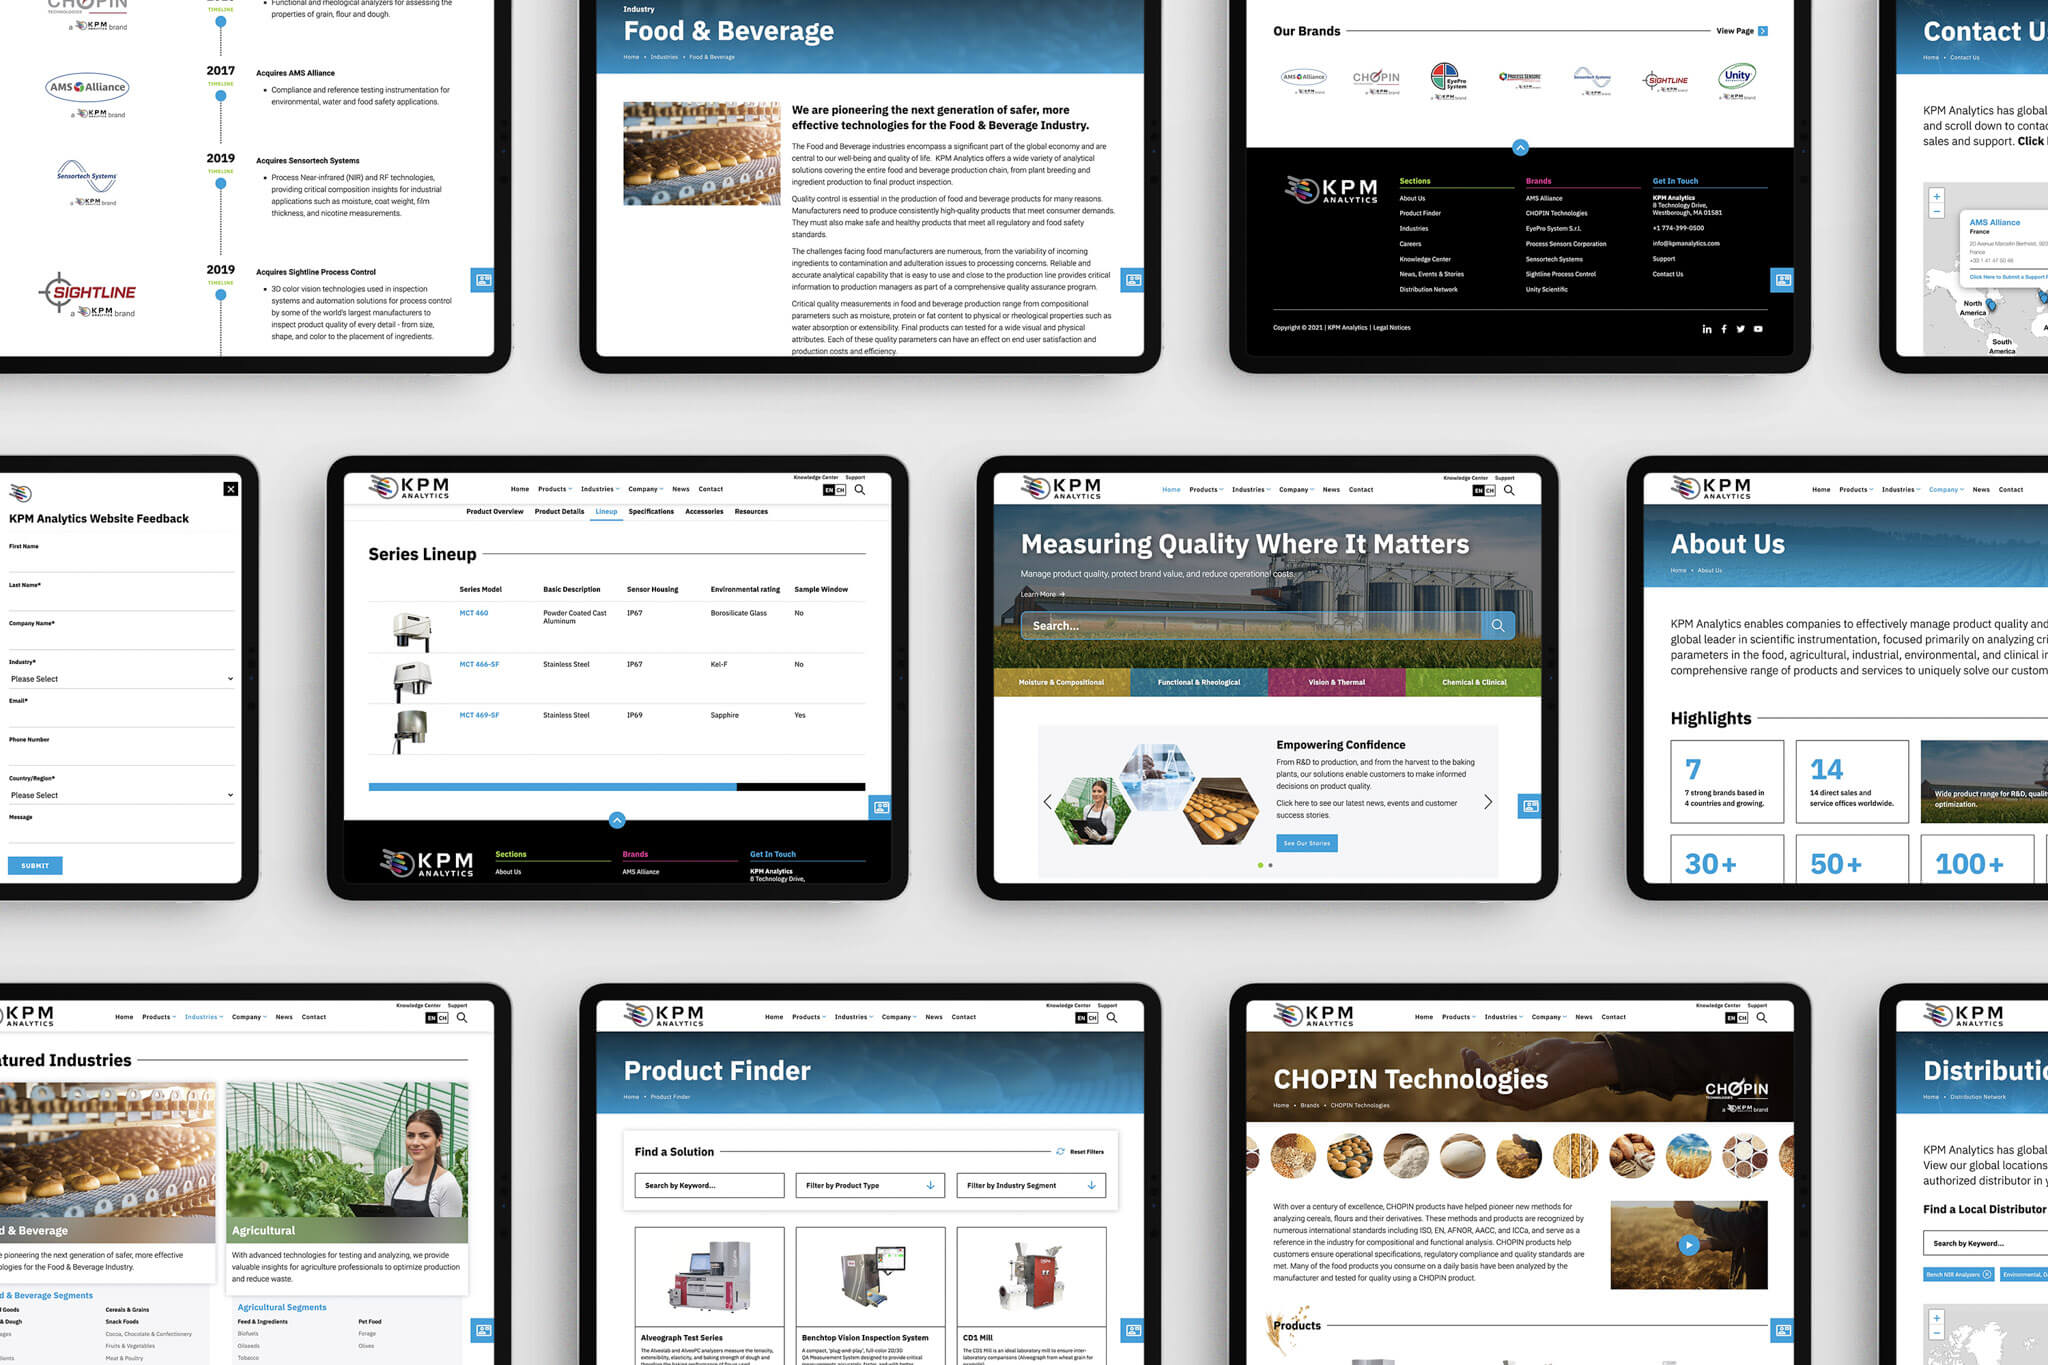 New KPM Analytics Website Delivers Powerful Industry Resource